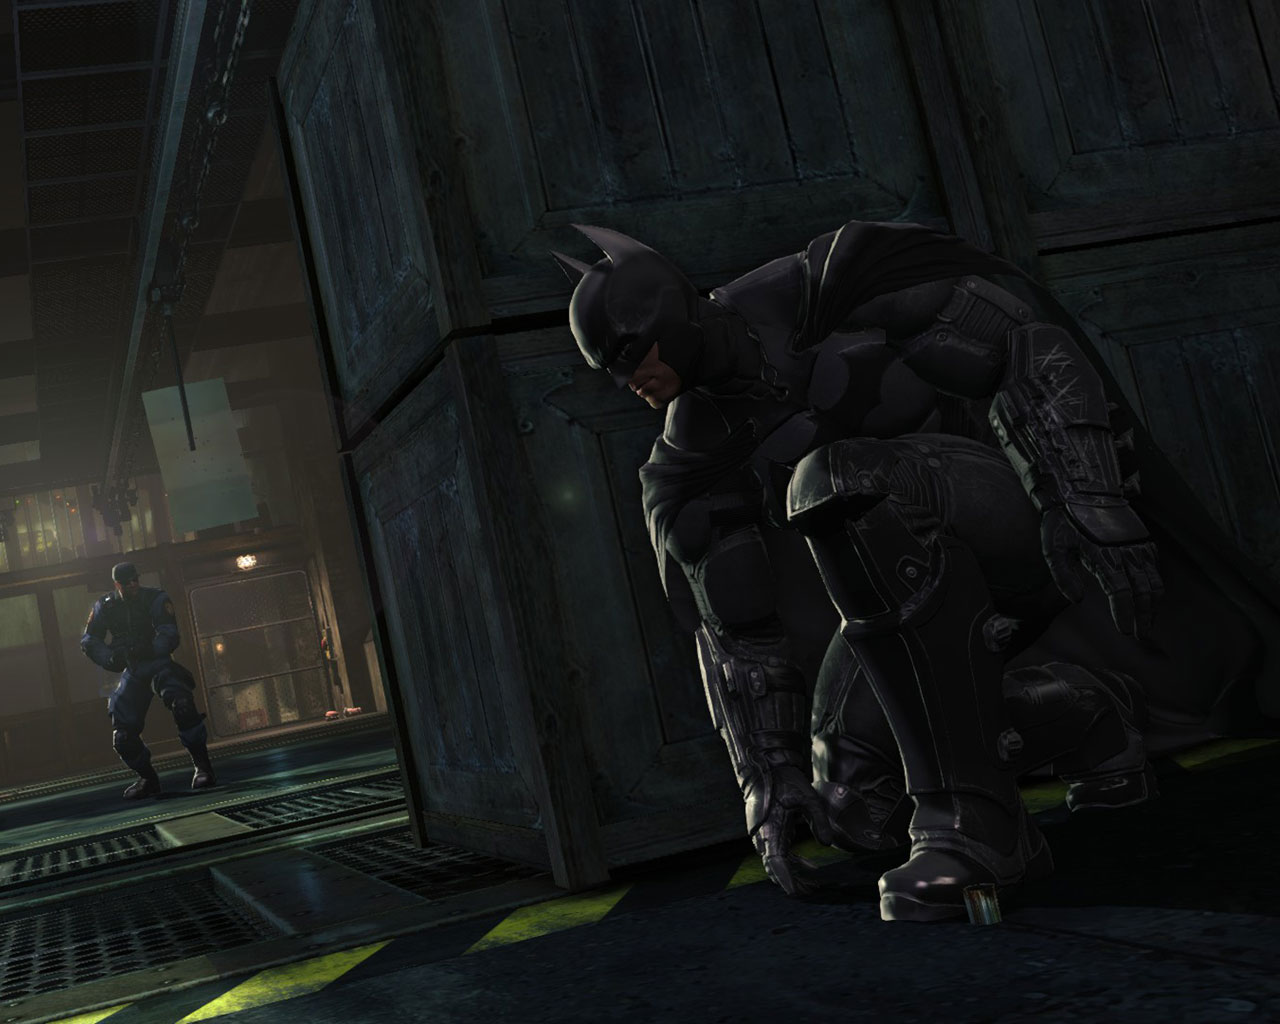 Free Batman: Arkham Origins Wallpaper in 1280x1024